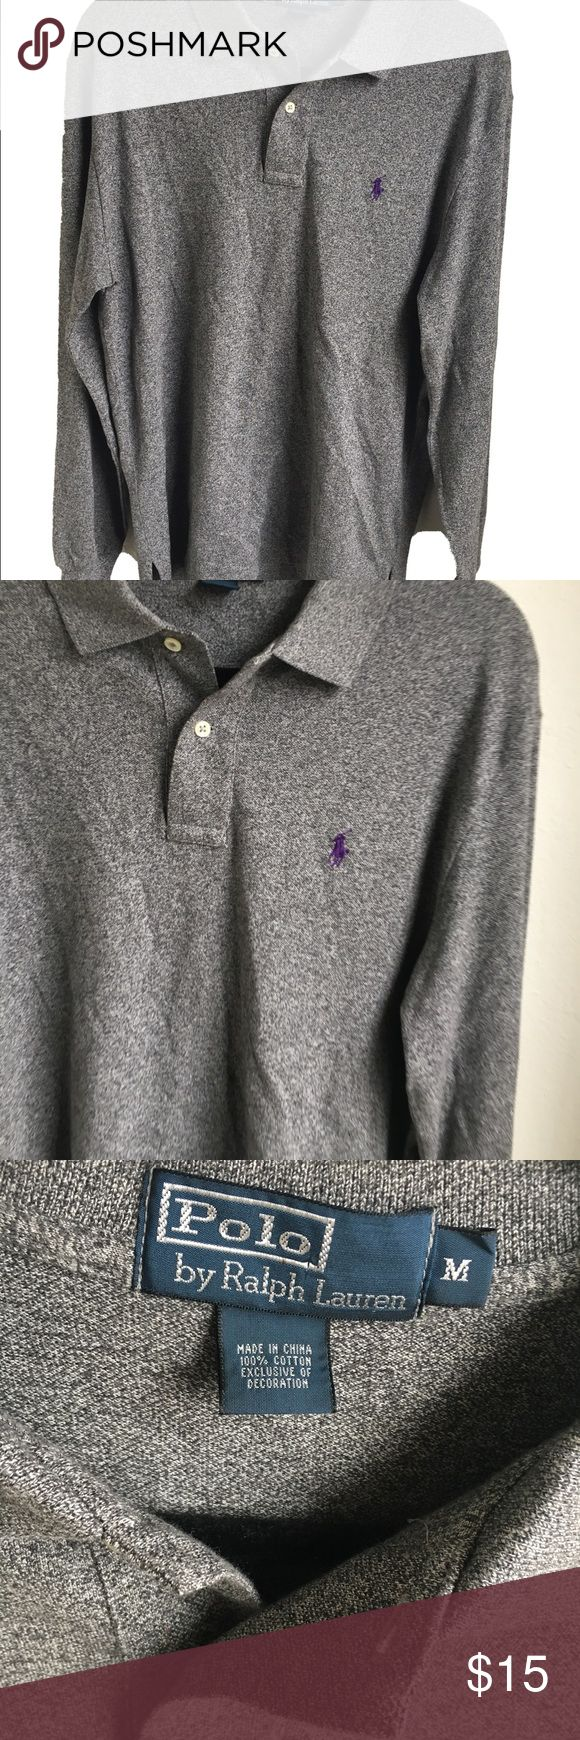 """Polo By Ralph Lauren Sz M Mens Long Sleeve Polo By Ralph Lauren Sz M Mens Long Sleeve Pullover Gray Blend T-shirt. Pit to pit 21"""" Length 30"""" Polo by Ralph Lauren Shirts Tees - Long Sleeve"""